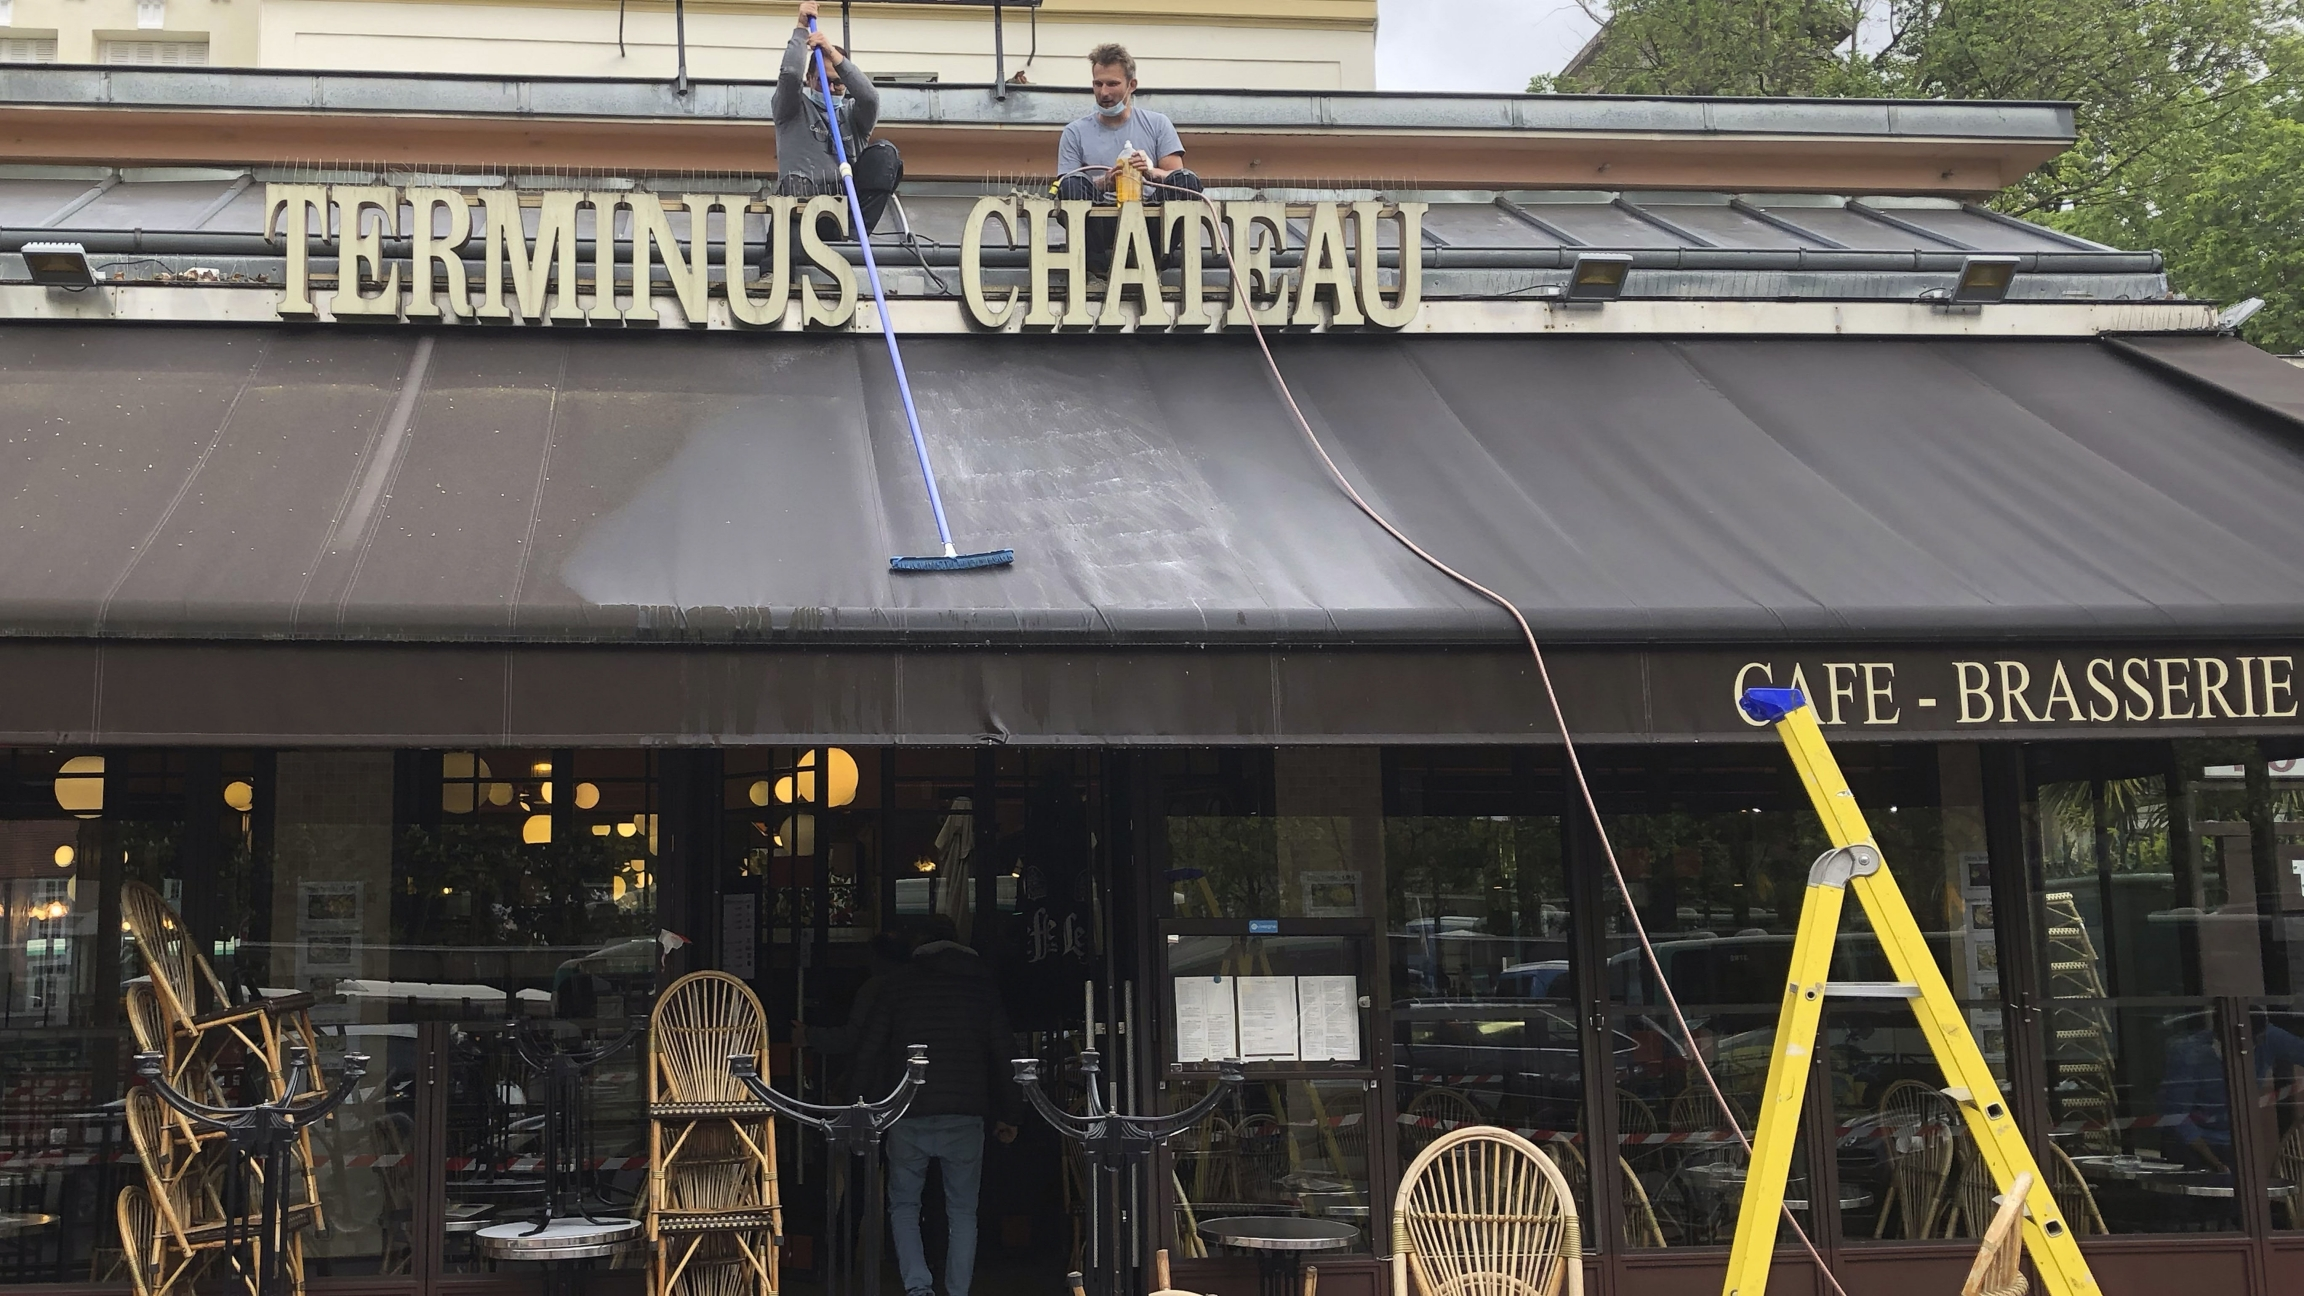 Restaurant workers clean the awning of a restaurant near Chateau de Vincennes.